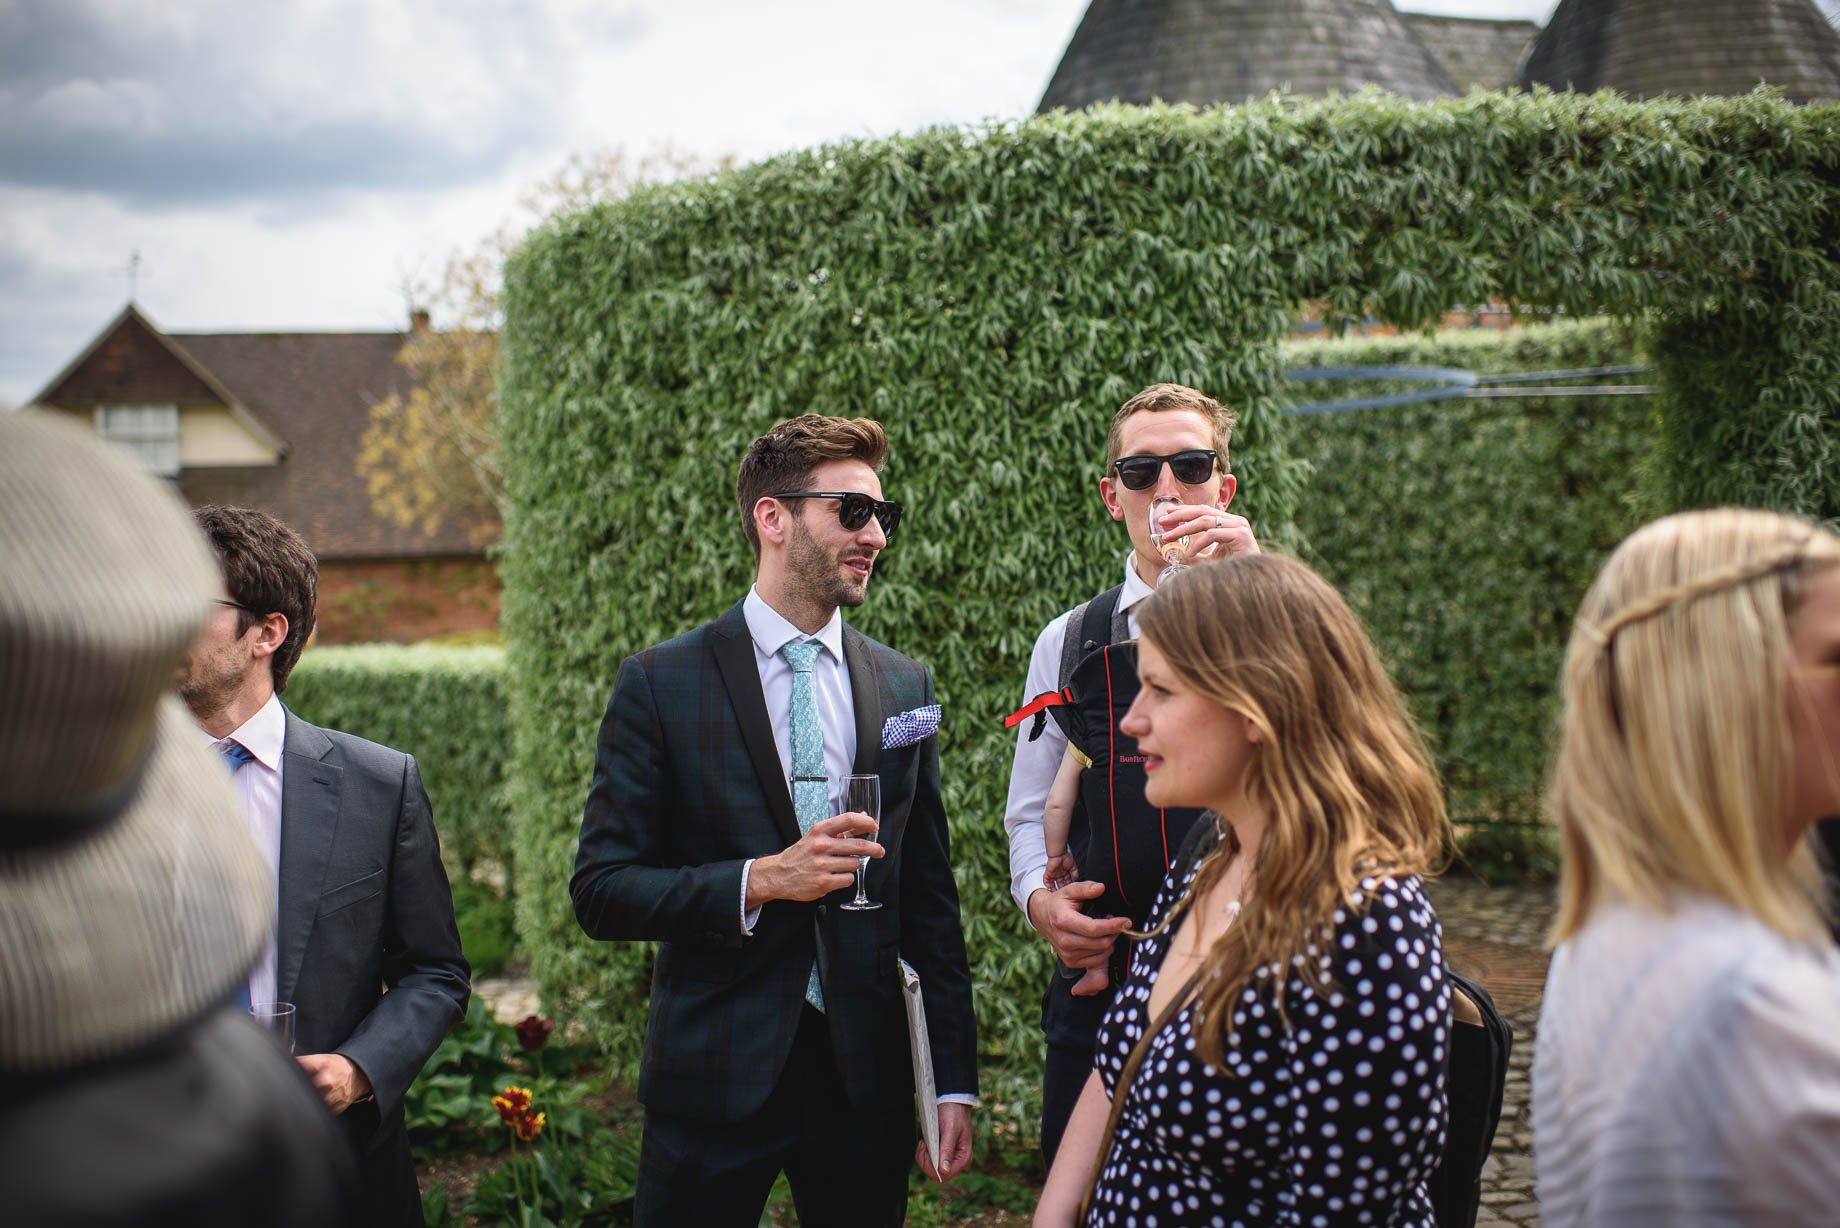 Bury Court Barn wedding photography by Guy Collier - Heather and Pat (74 of 170)